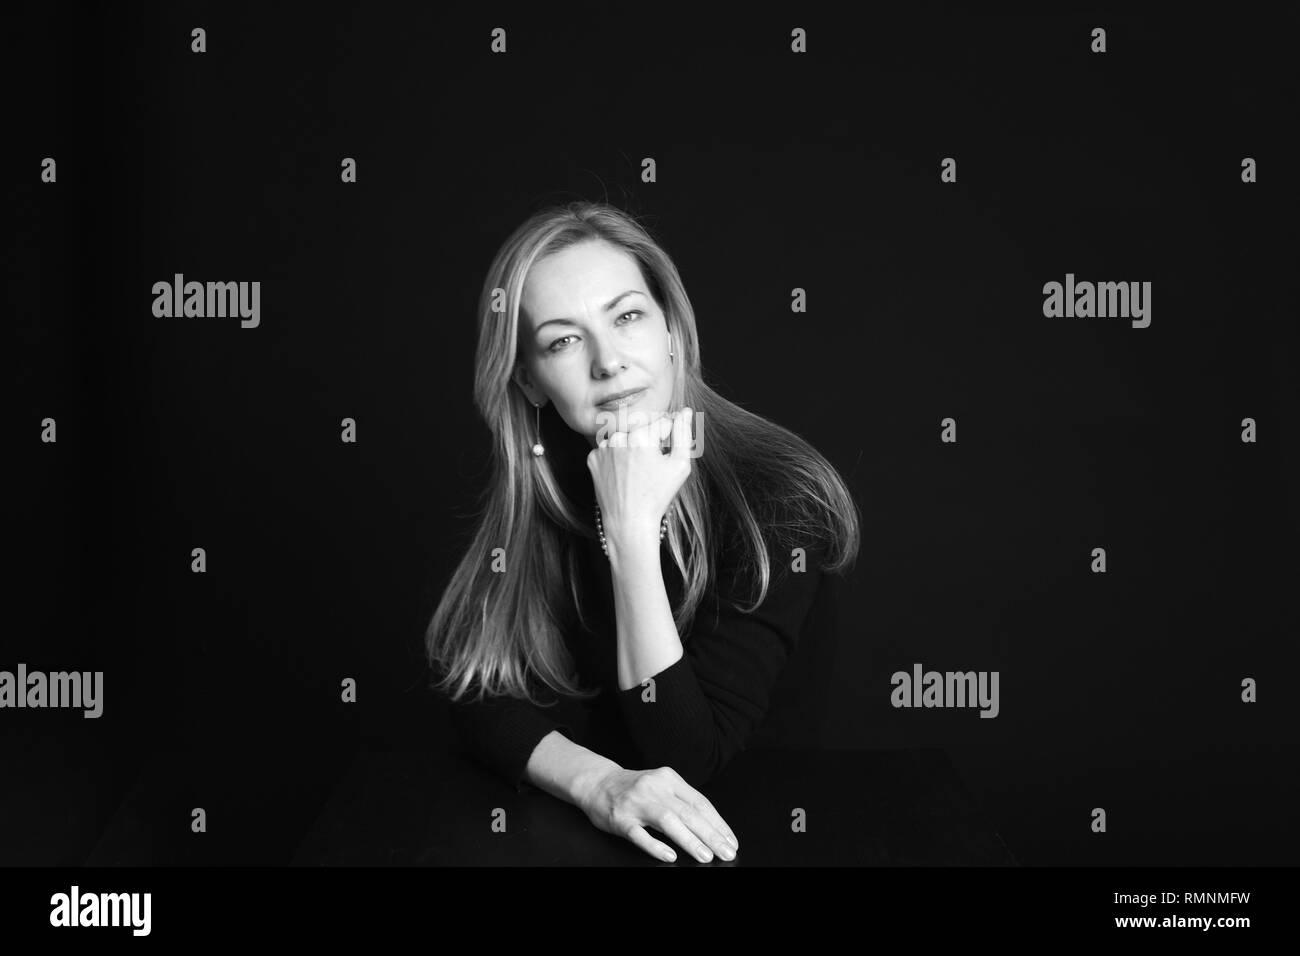 Close up studio portrait of a beautiful woman in the black dress against black background